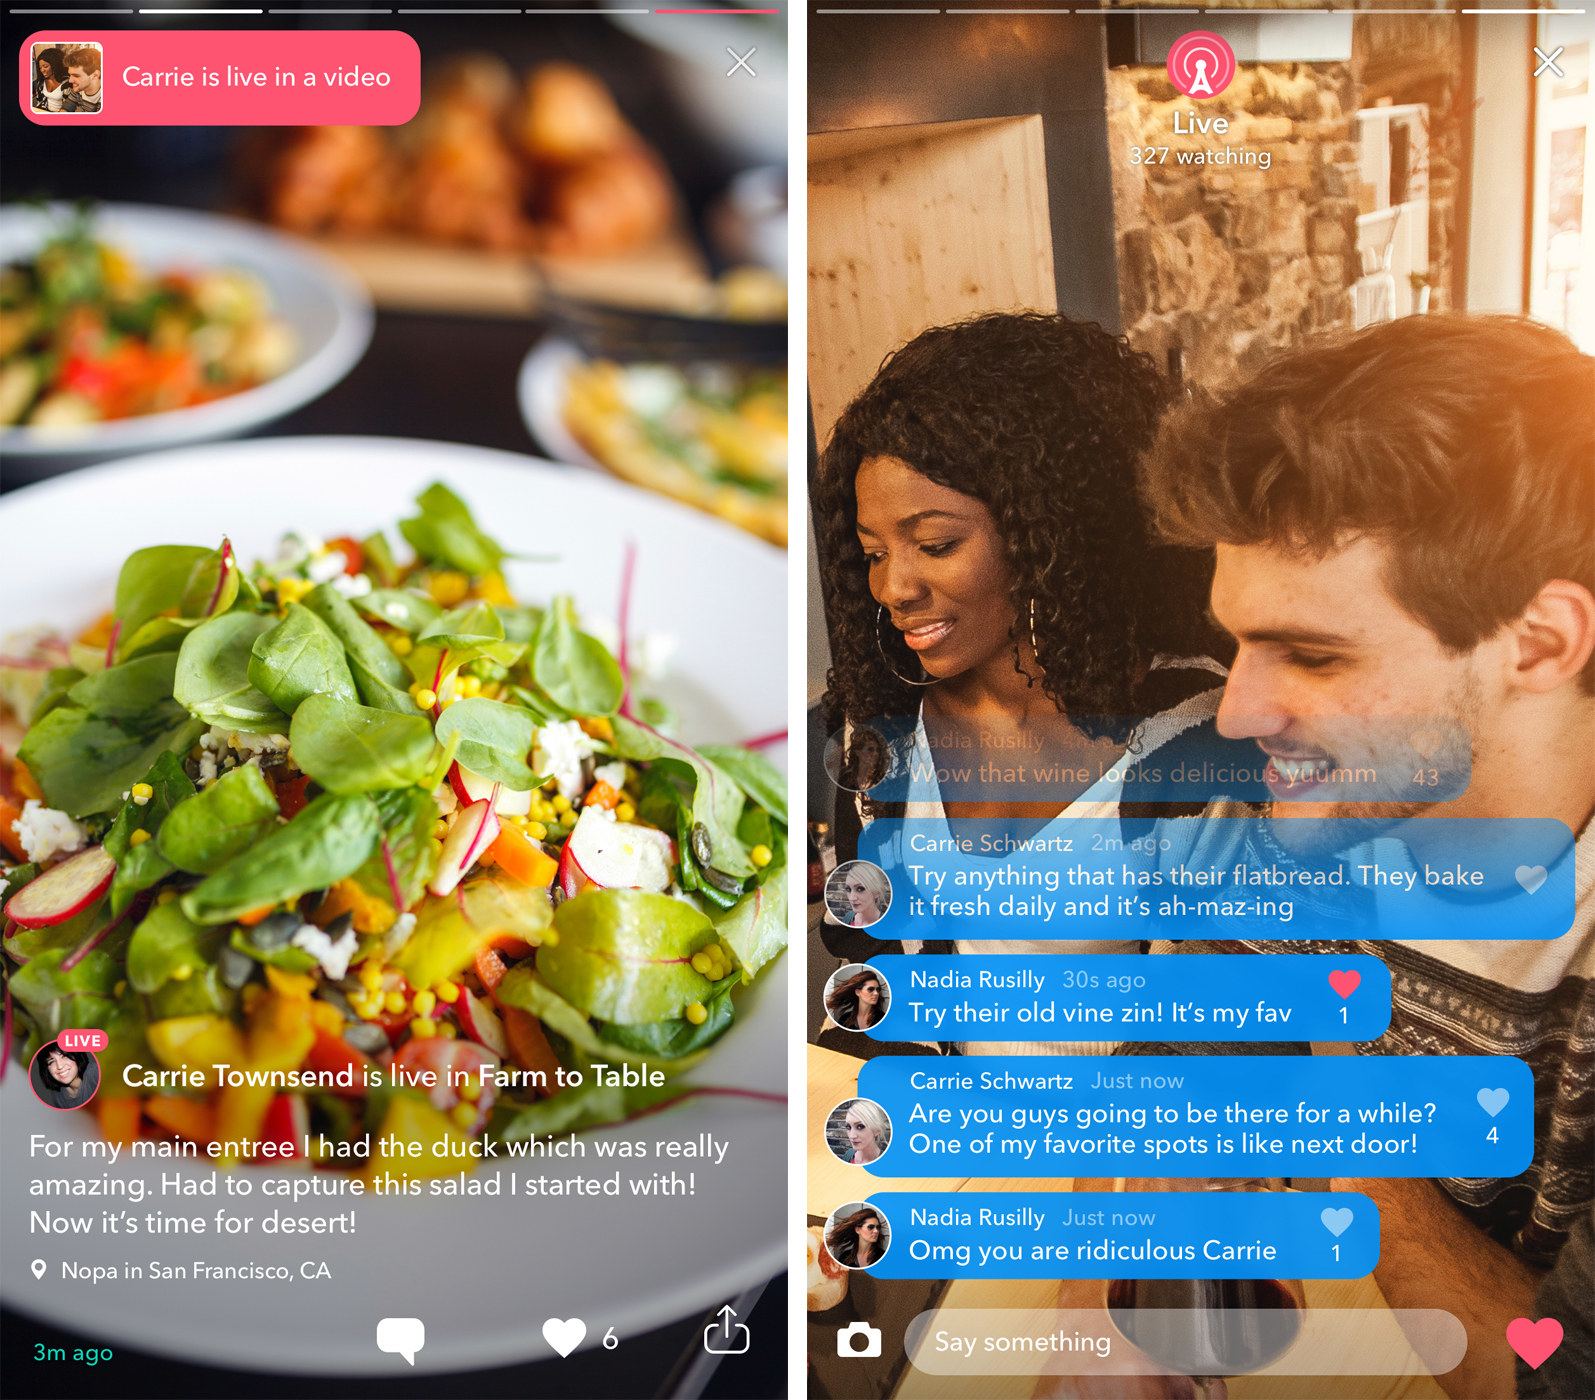 Instead Of Looking Through Static Food Photos For Dinner Inspiration,  Scroll Through Daily Live Videos